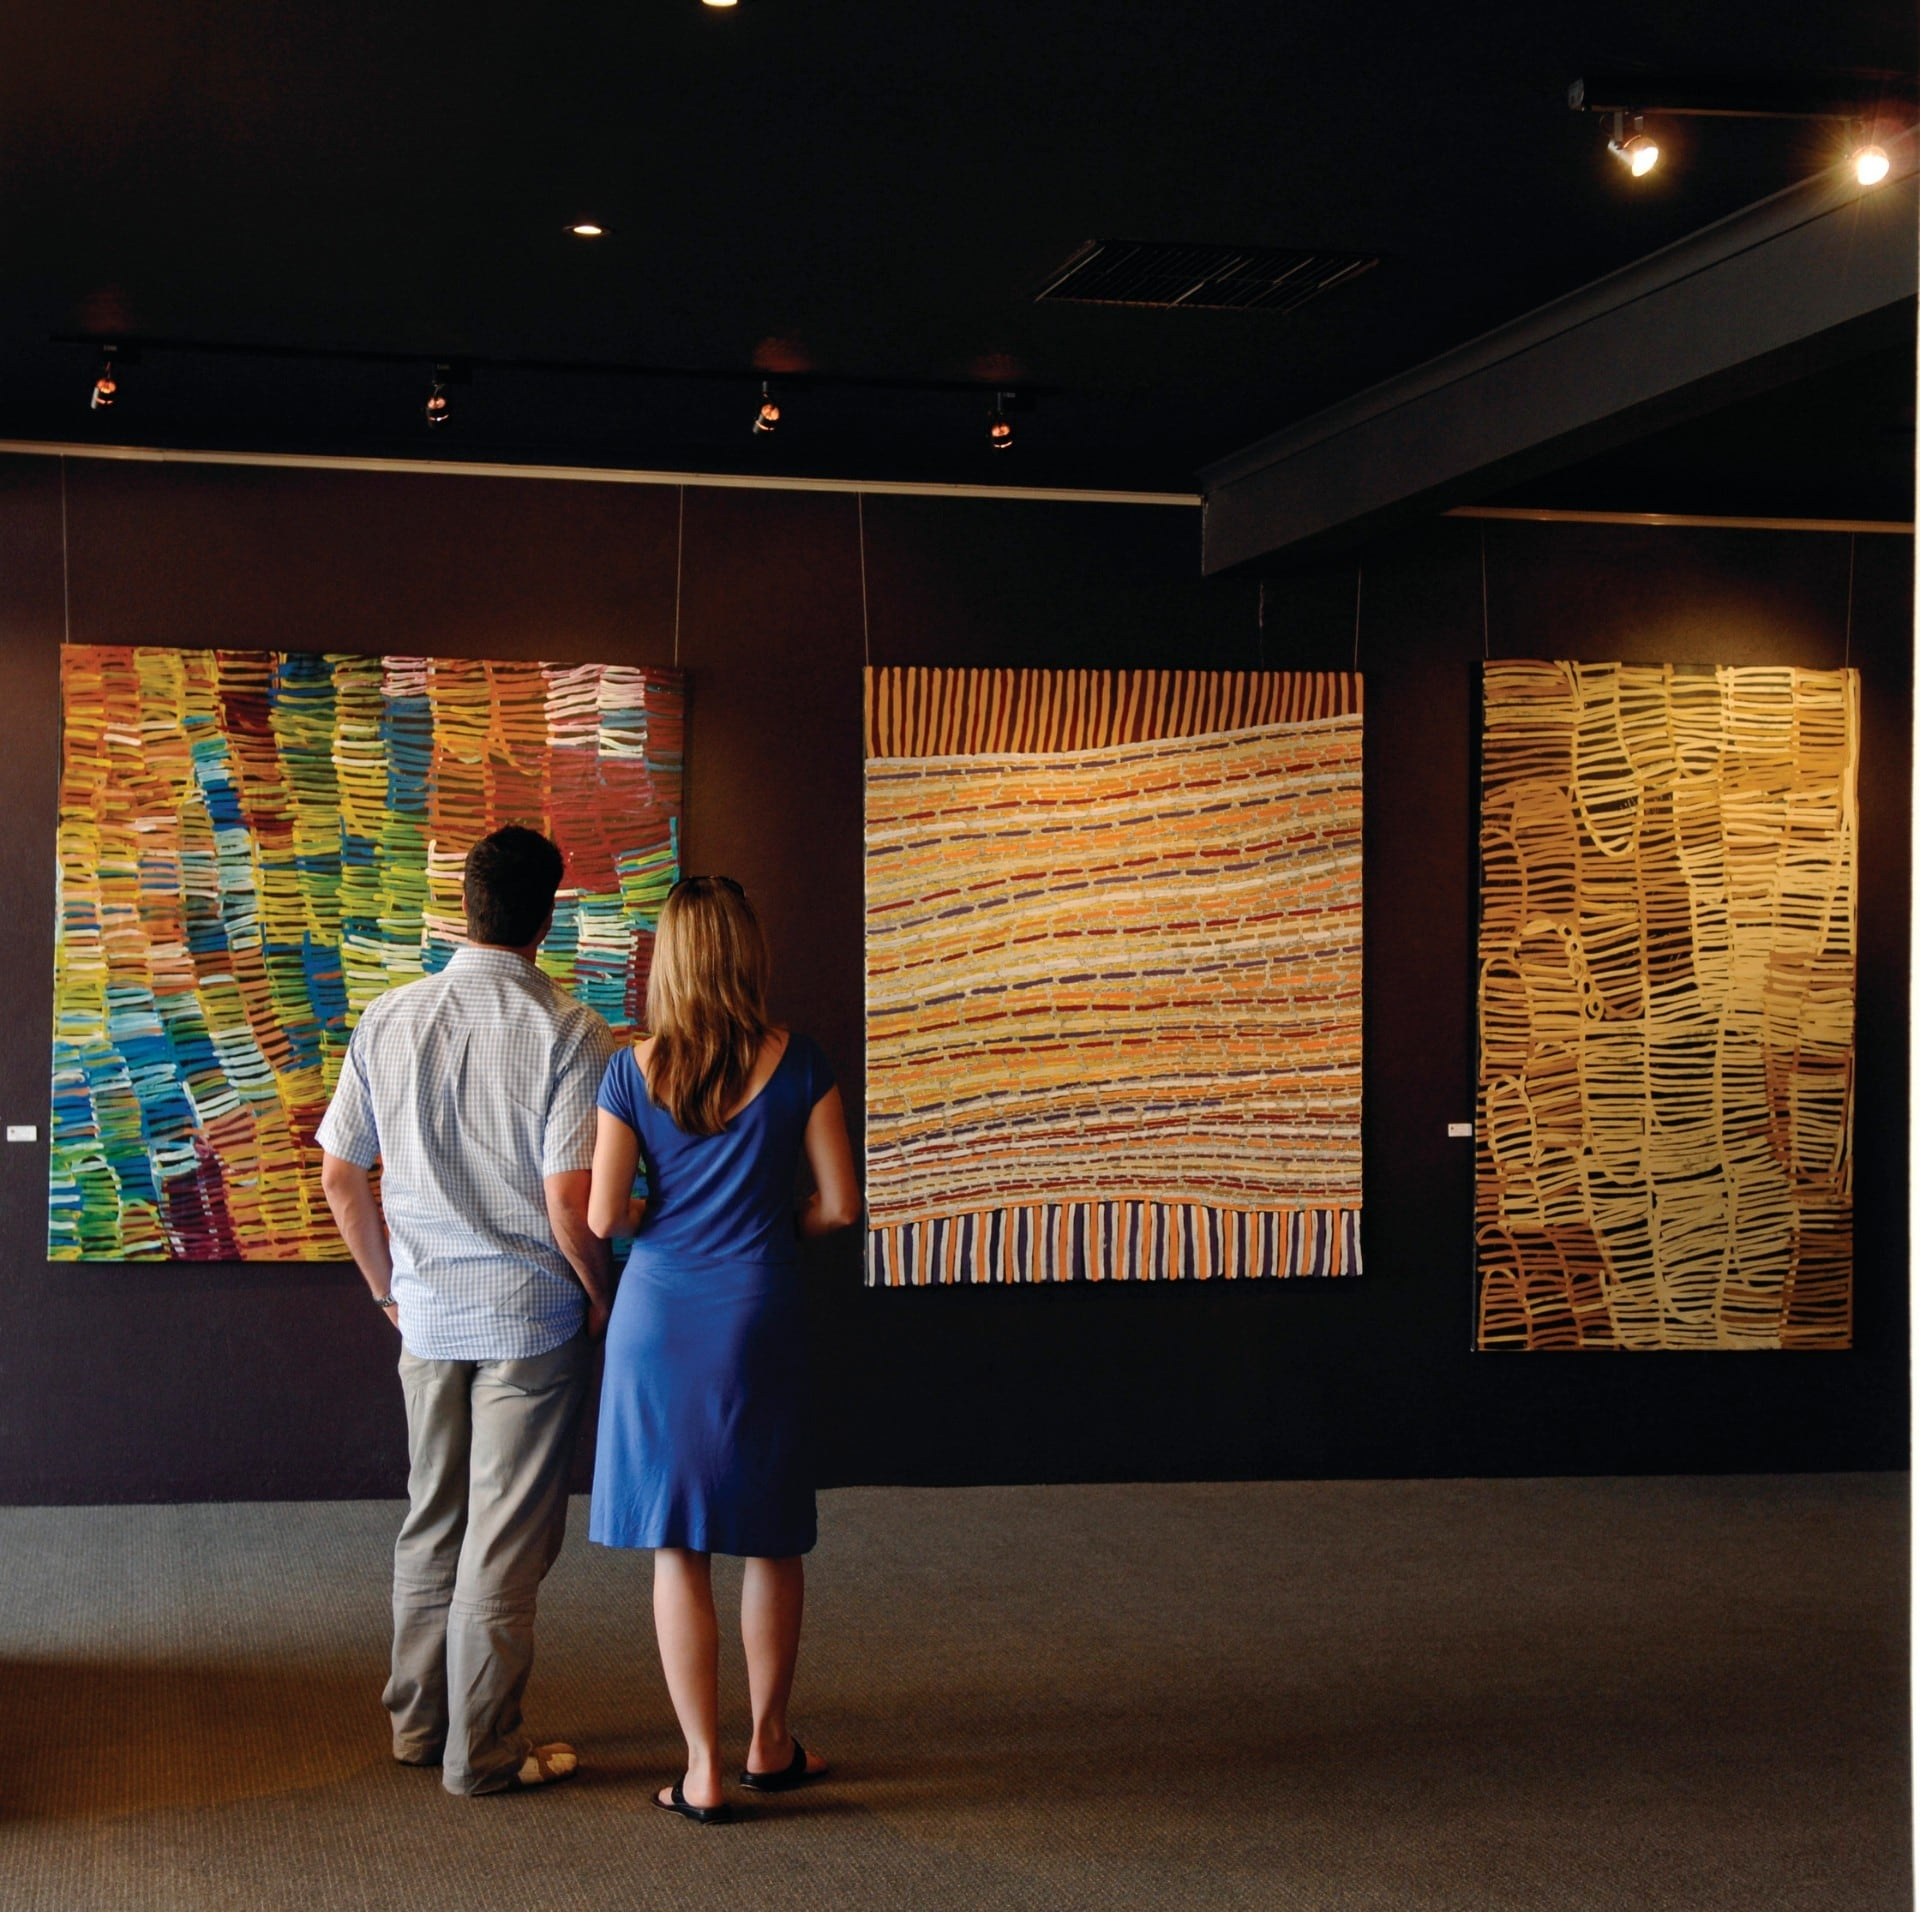 Couple at Mbantua Art Gallery © Tourism NT